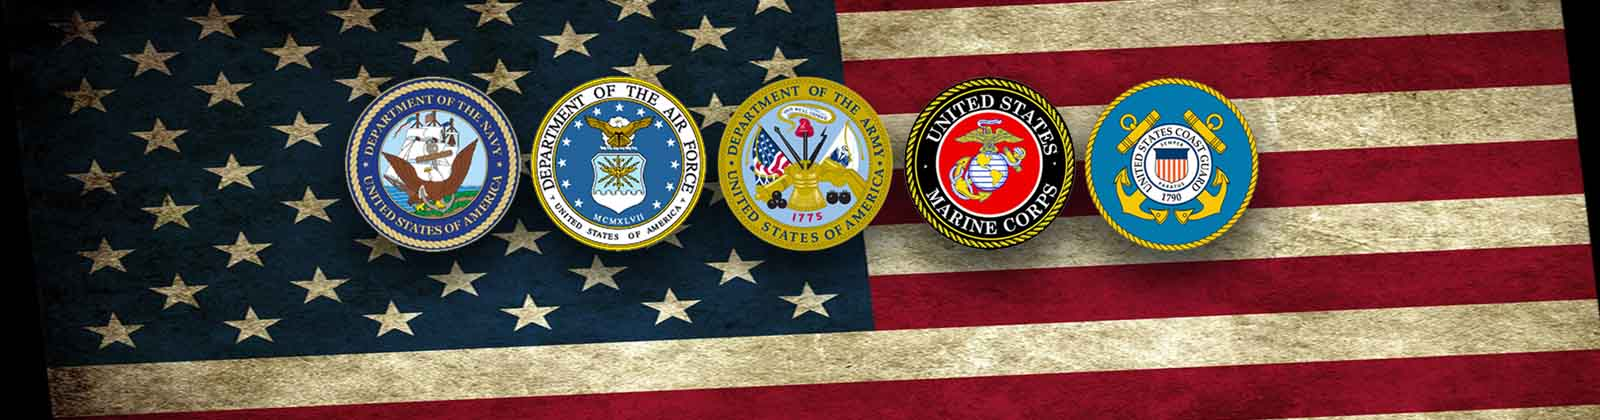 Logos for US Military Branches